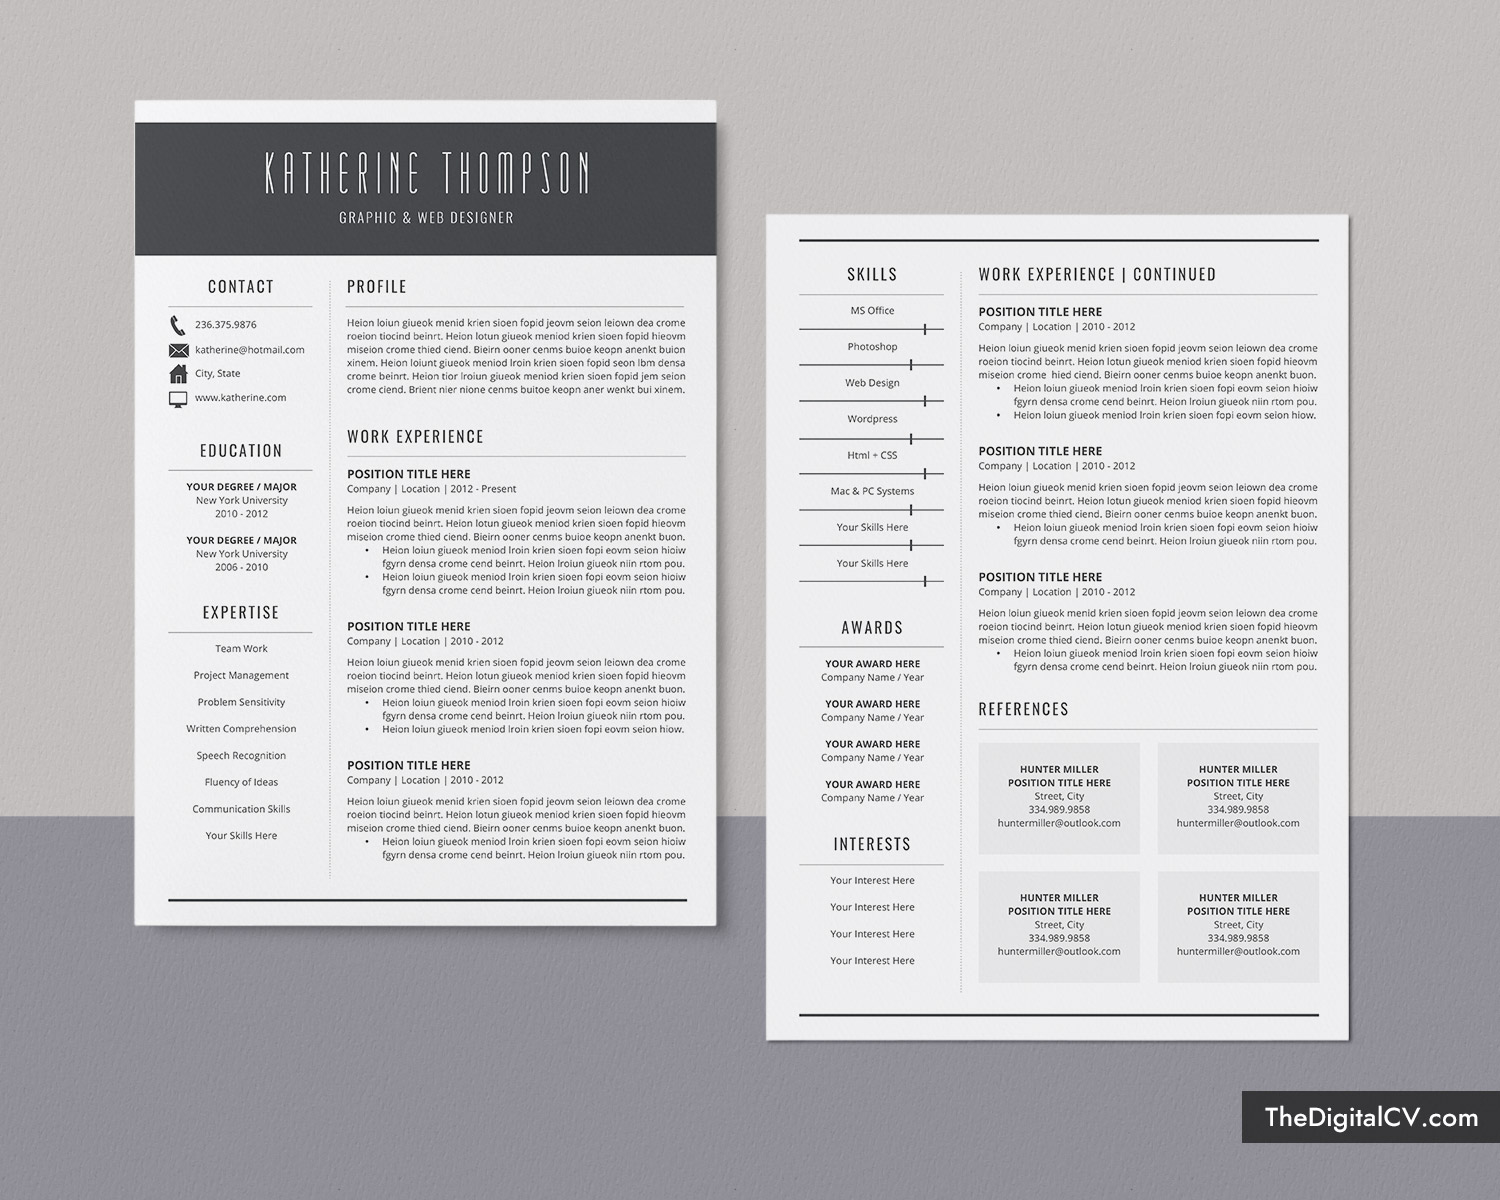 Modern CV Templates for 2020-2021, Professional Resume Templates, for Students, Interns, College ...